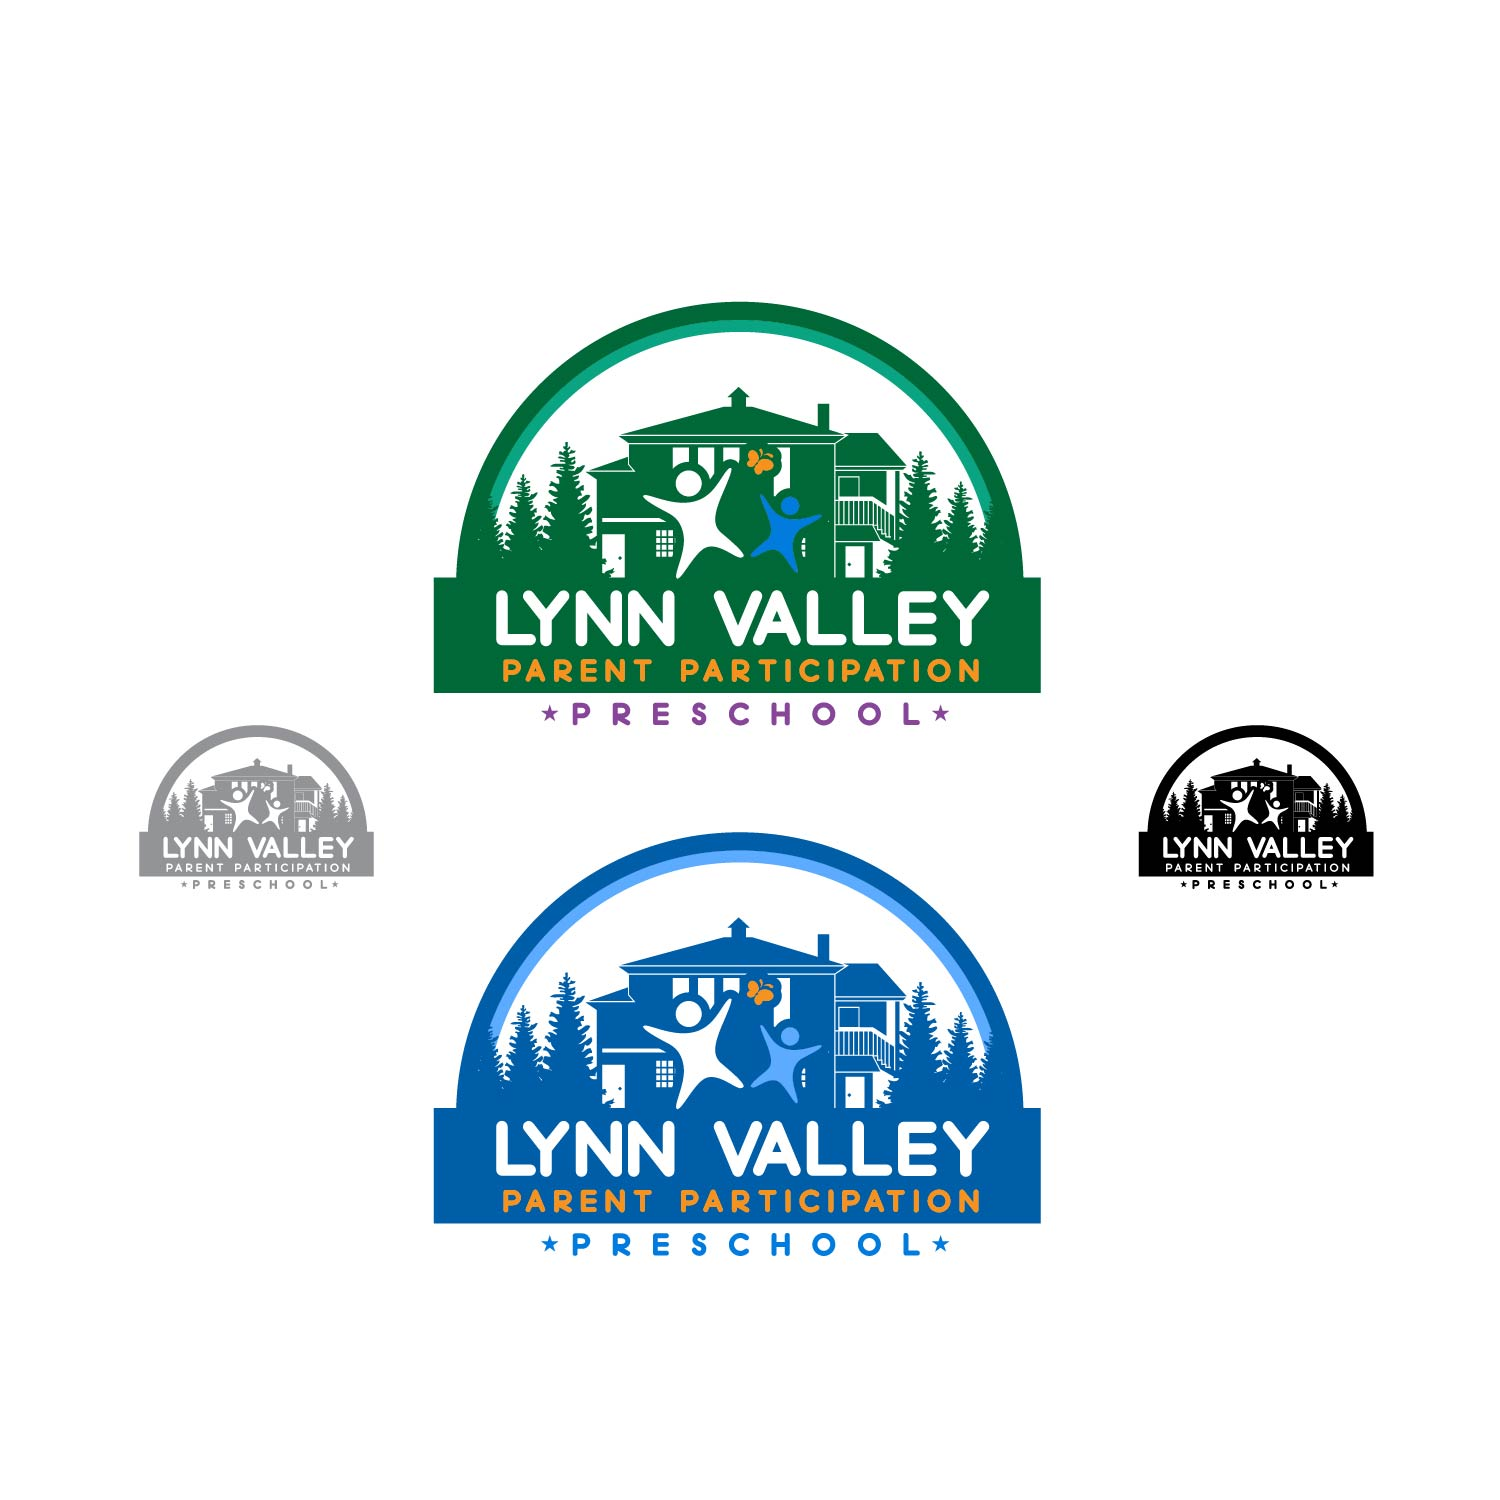 Logo Design by lagalag - Entry No. 61 in the Logo Design Contest New Logo Design for Lynn Valley Parent Participation Preschool.